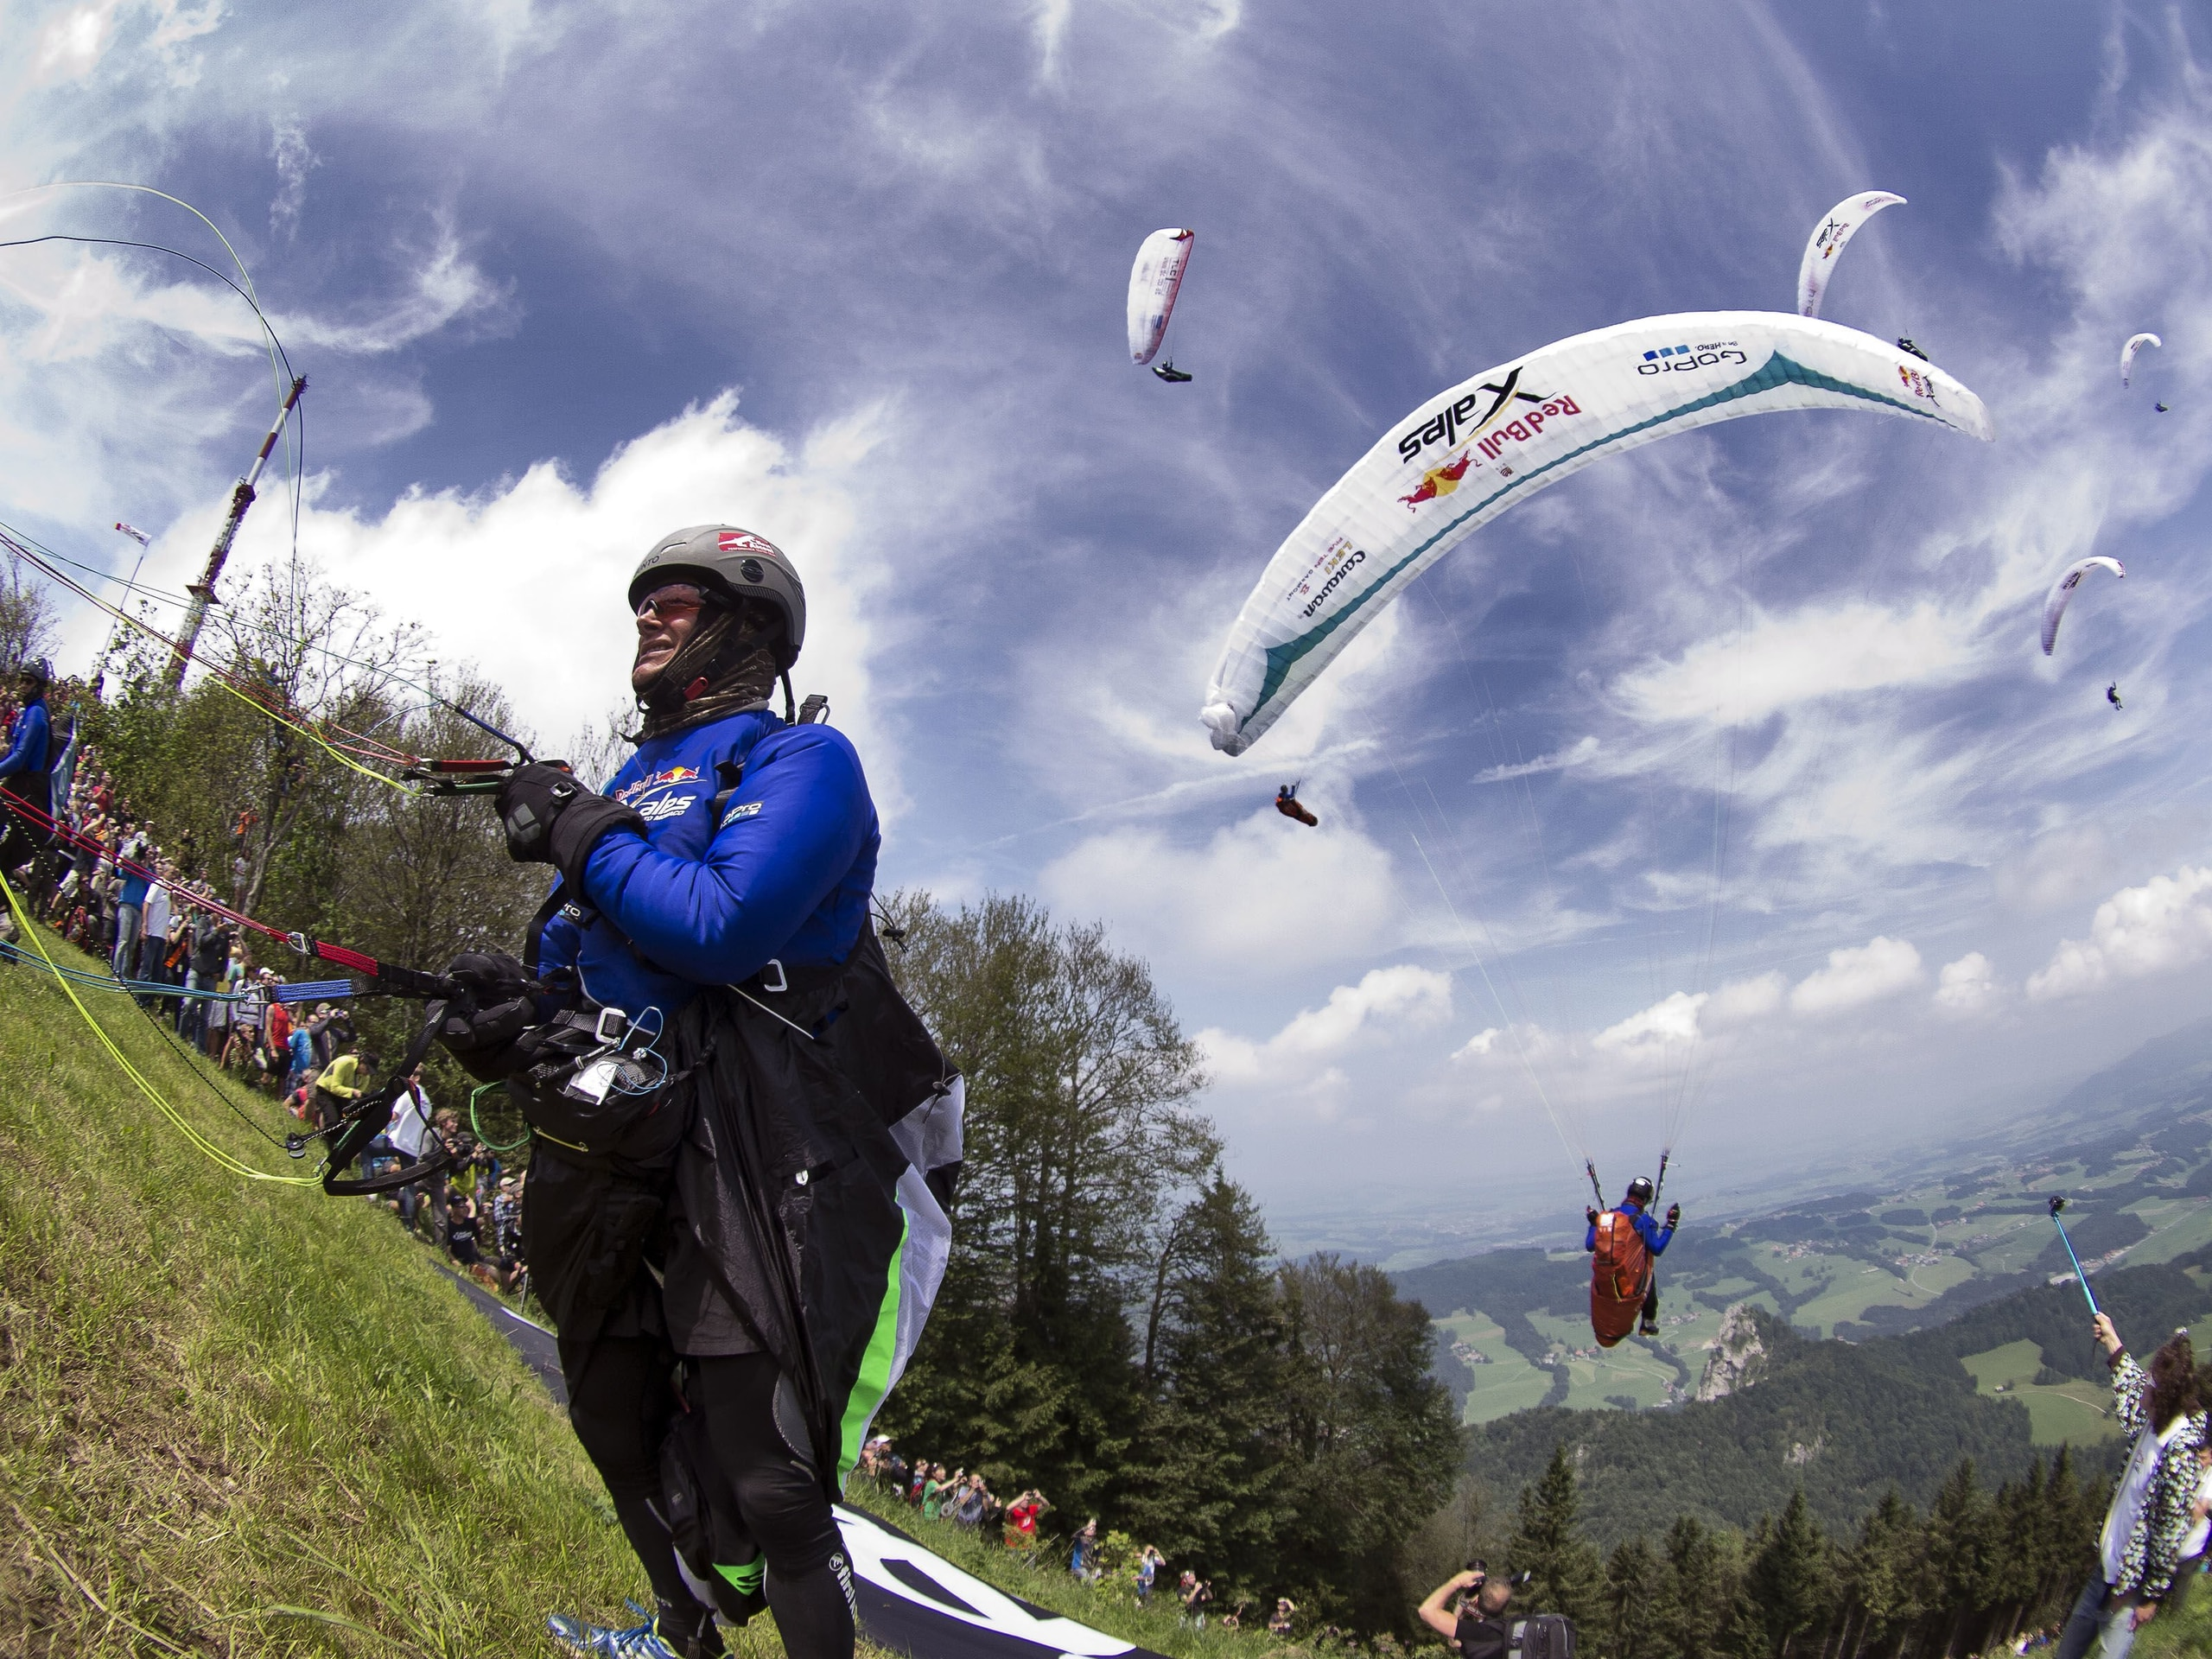 Pierre Carter (RSA) prepares for flyght during the Red Bull X-Alps 2013 at Gaisberg in Austria on July 7th, 2013